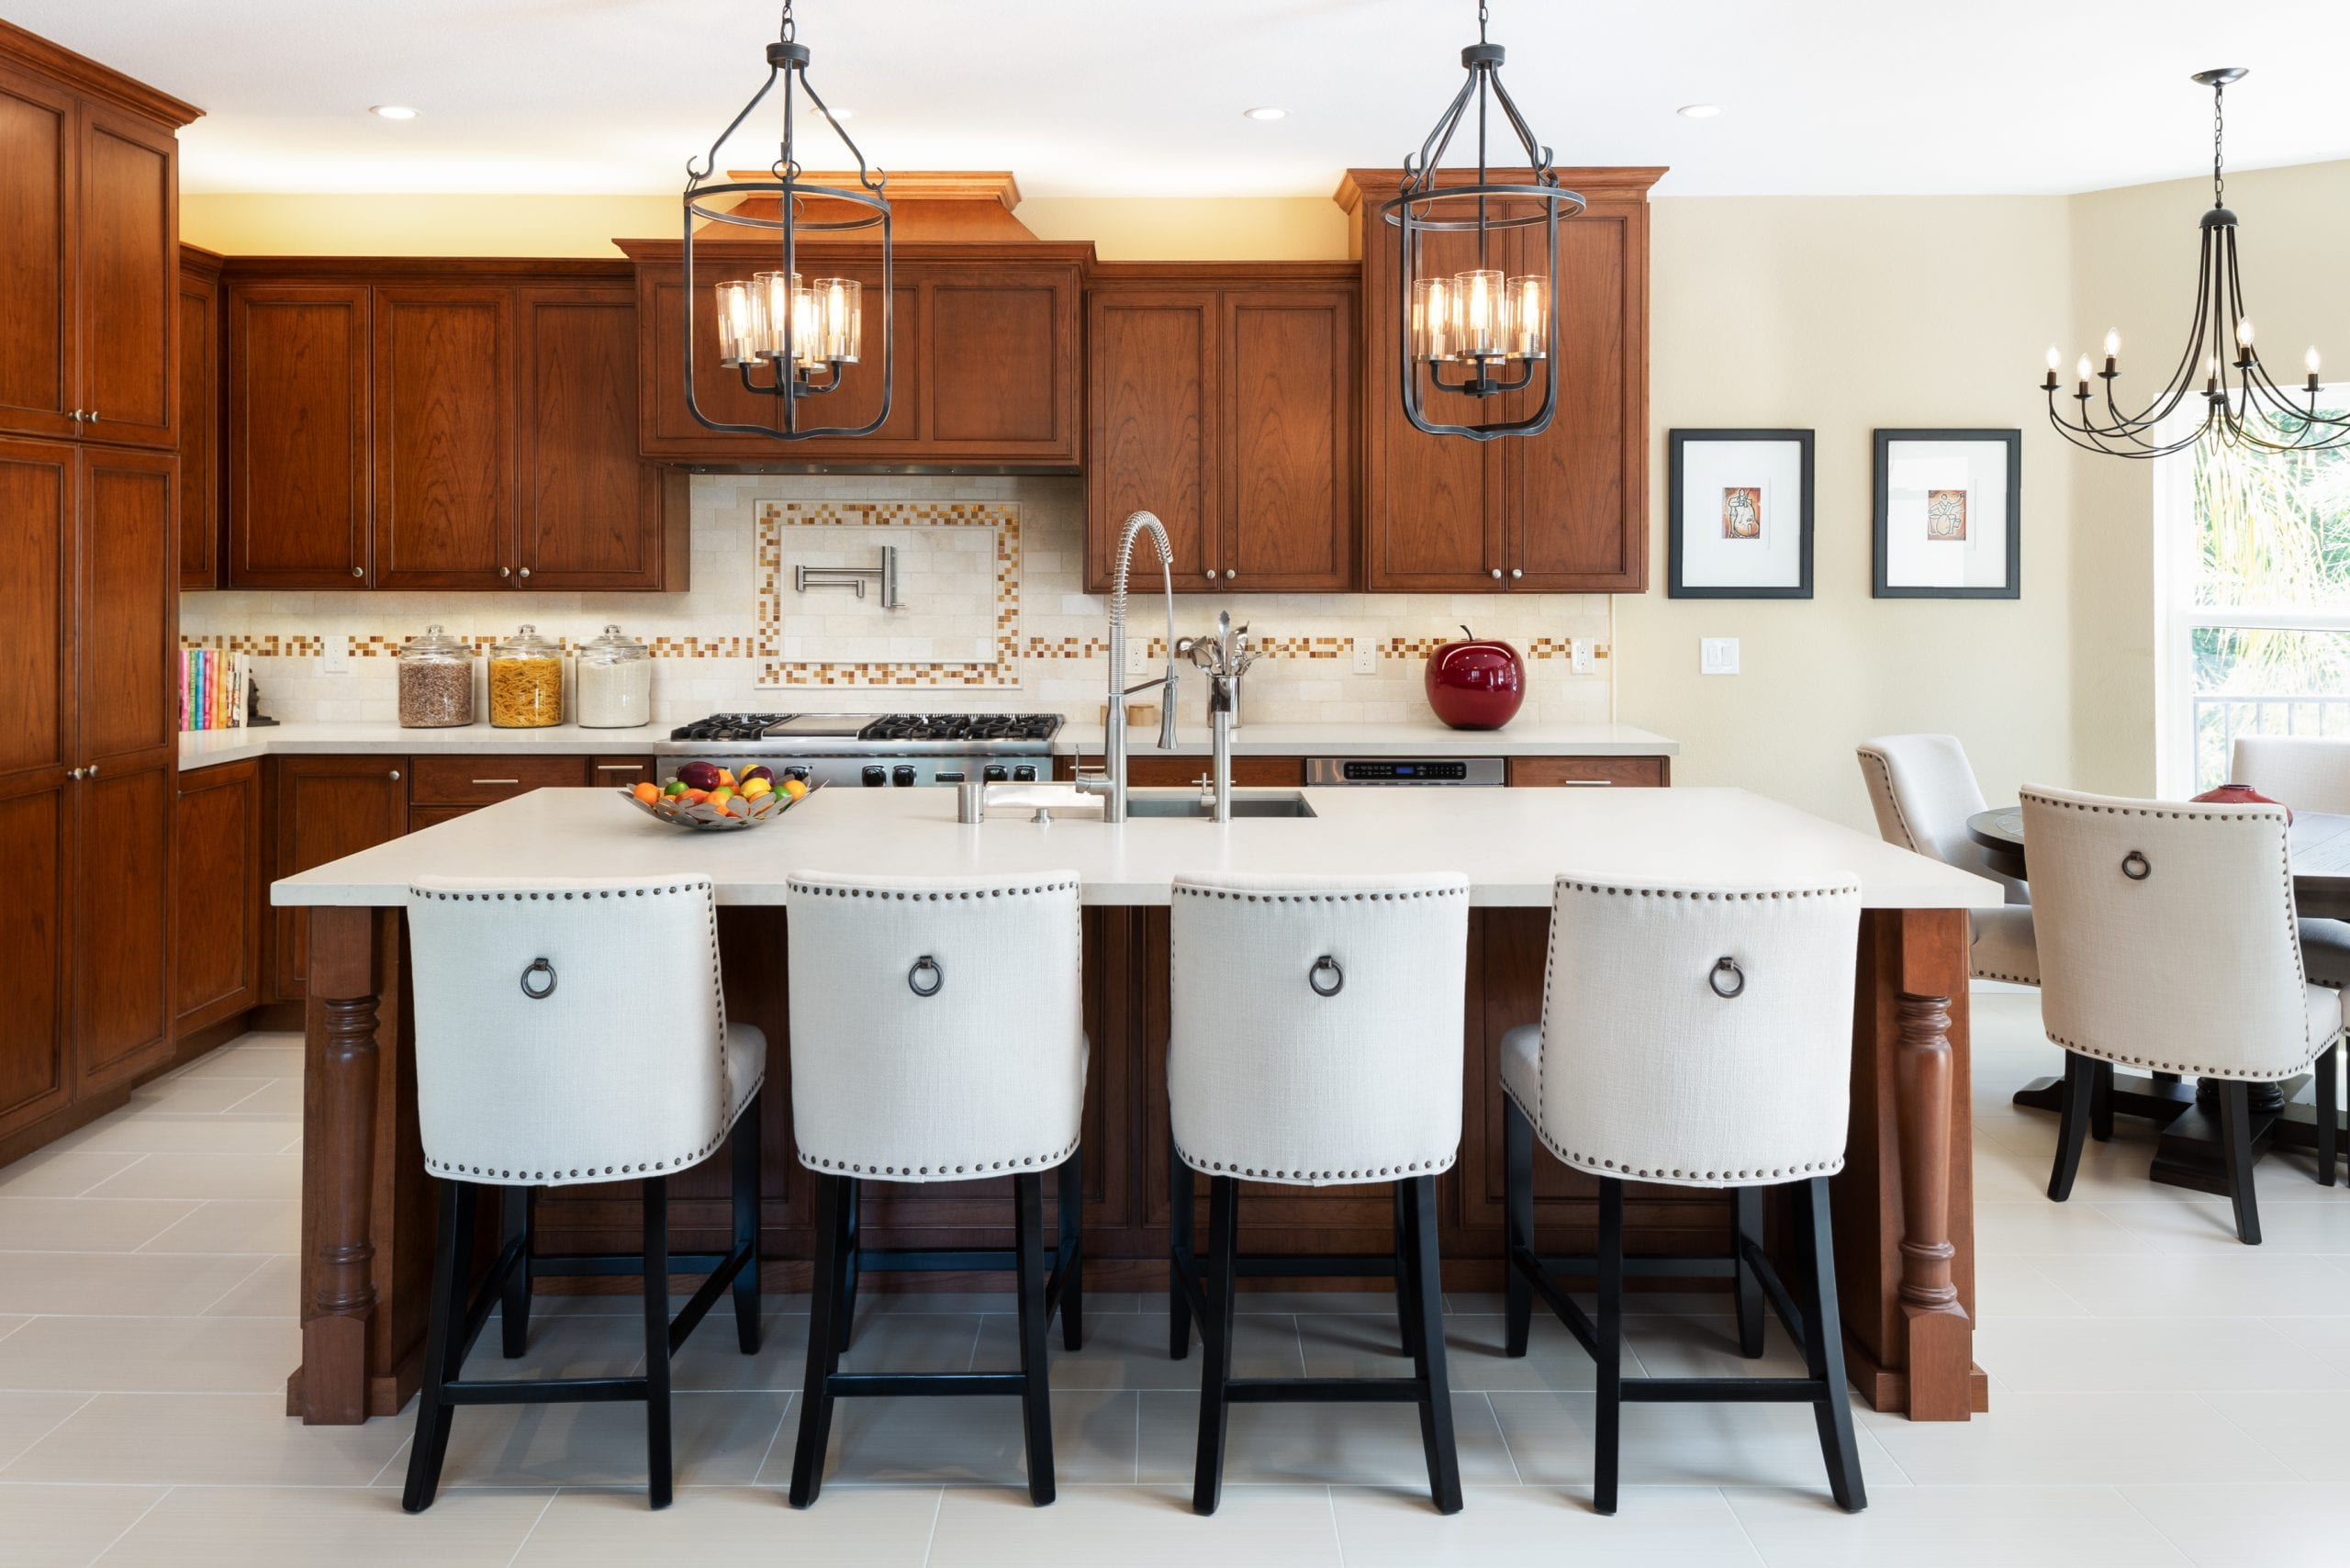 White leather high-back chairs in front of island with white marble countertop